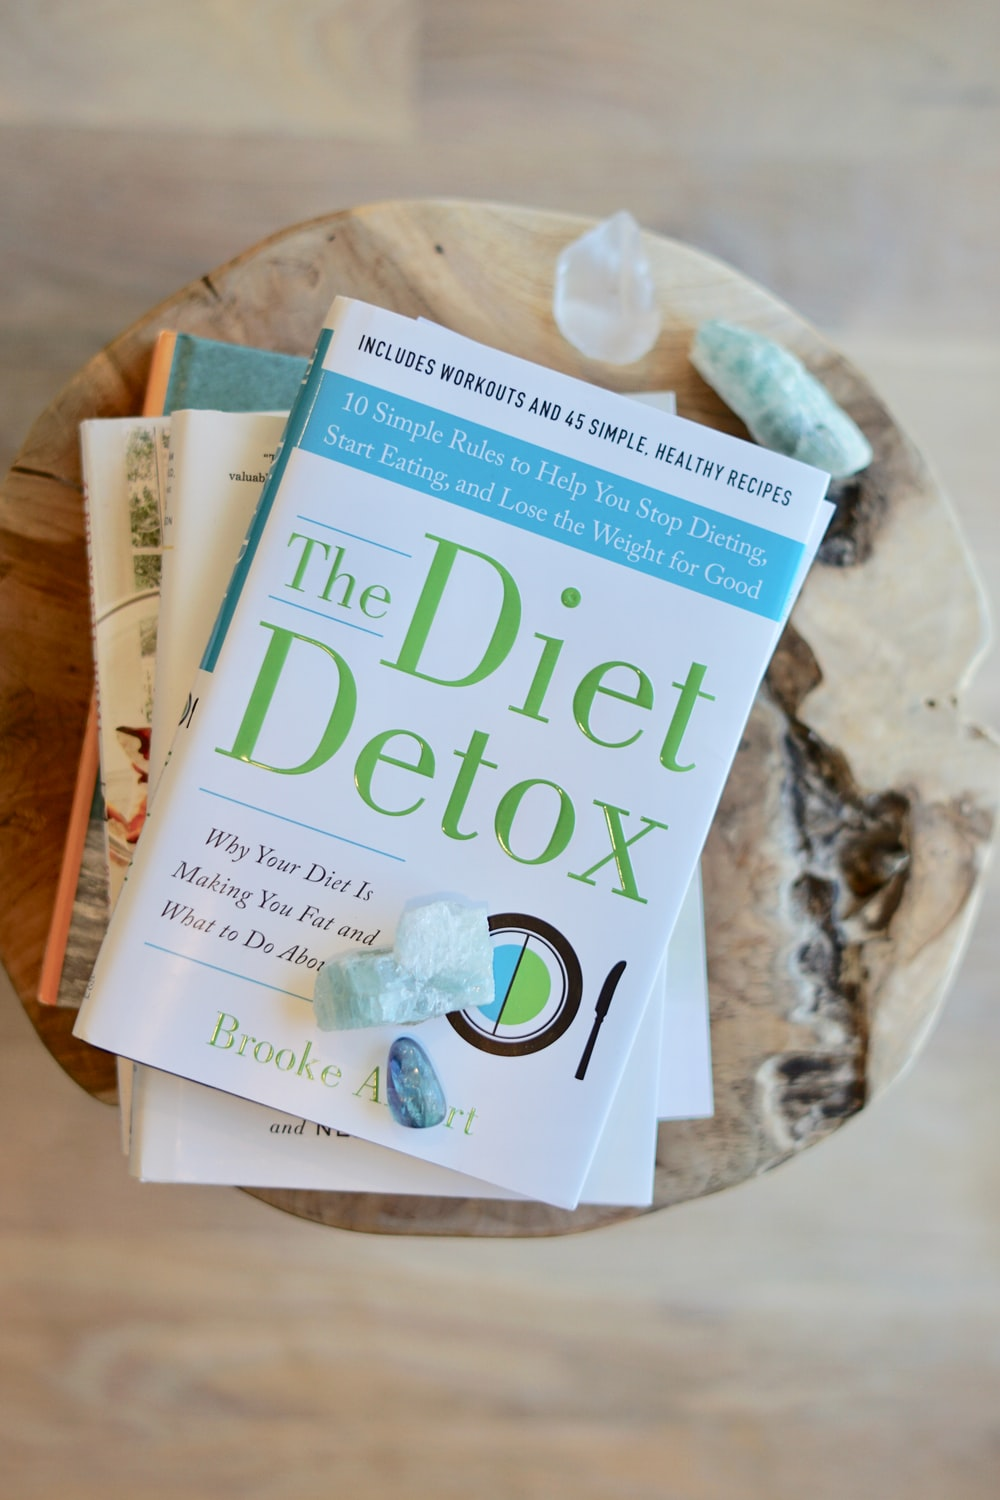 The Diet Detox book